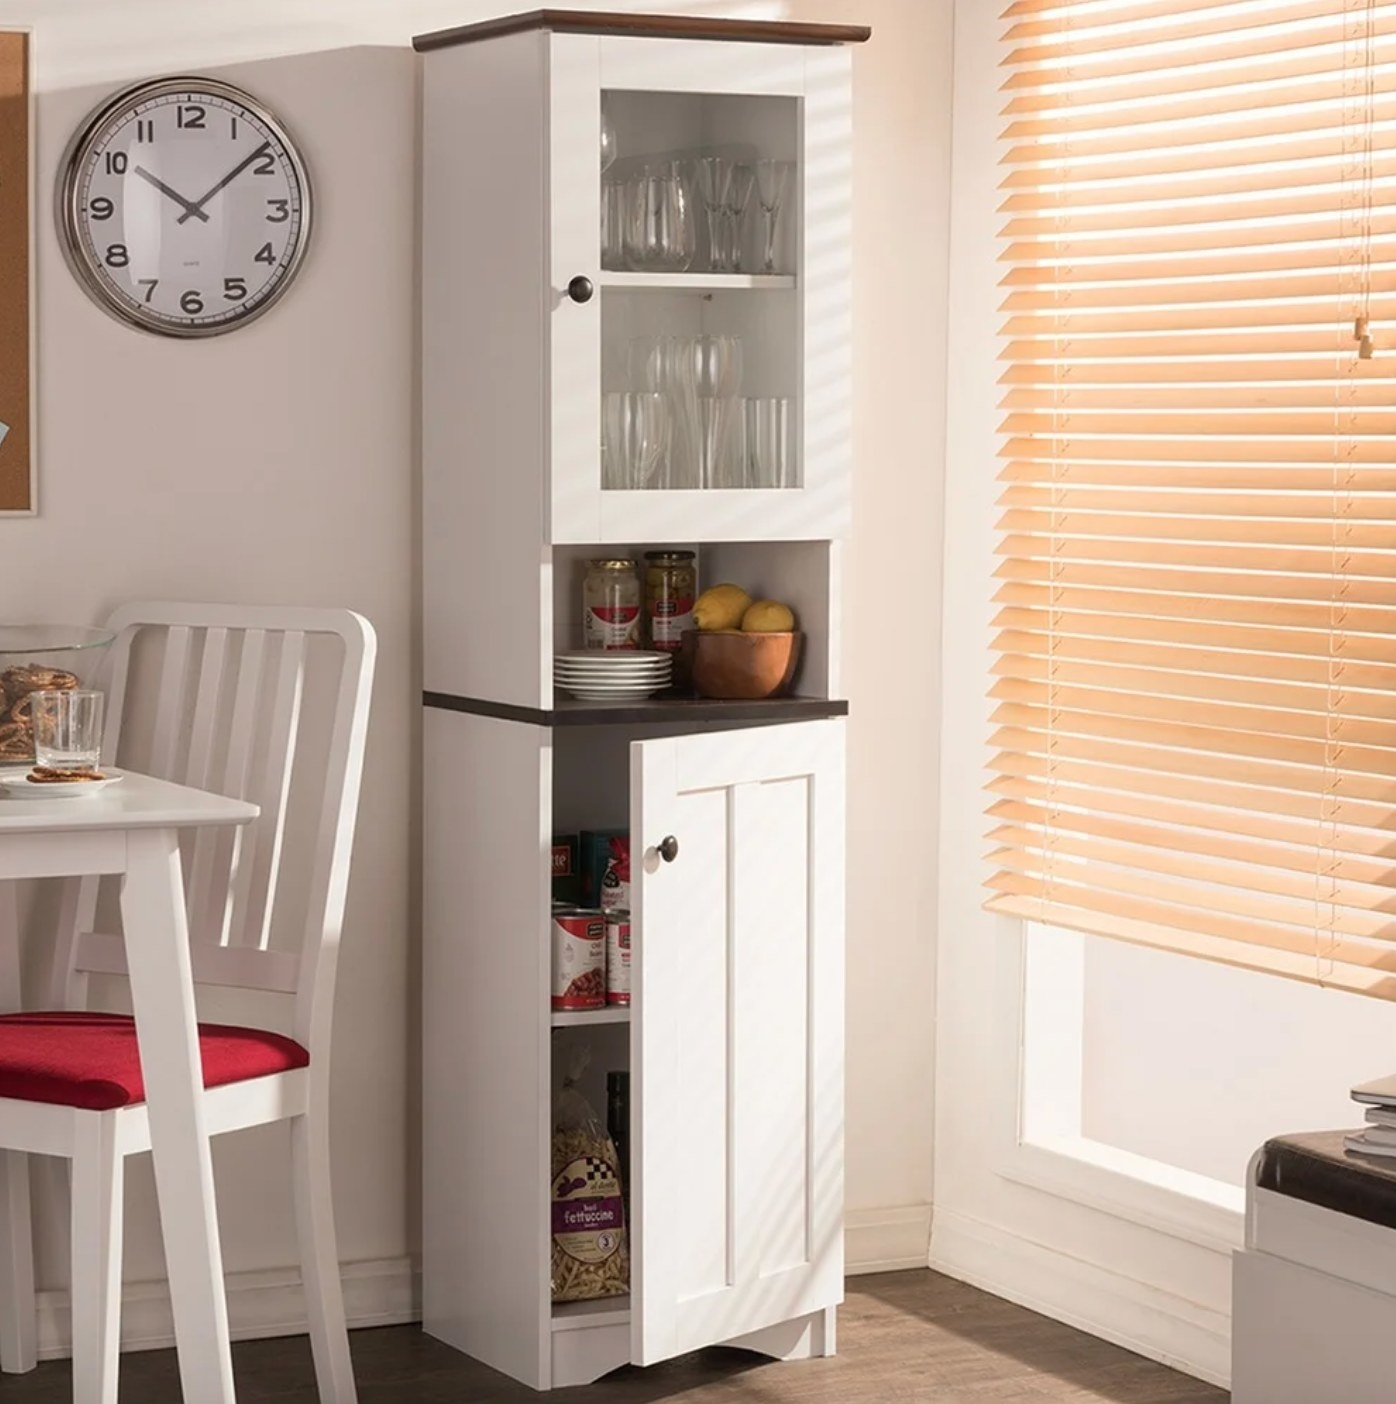 The white wood kitchen cabinet